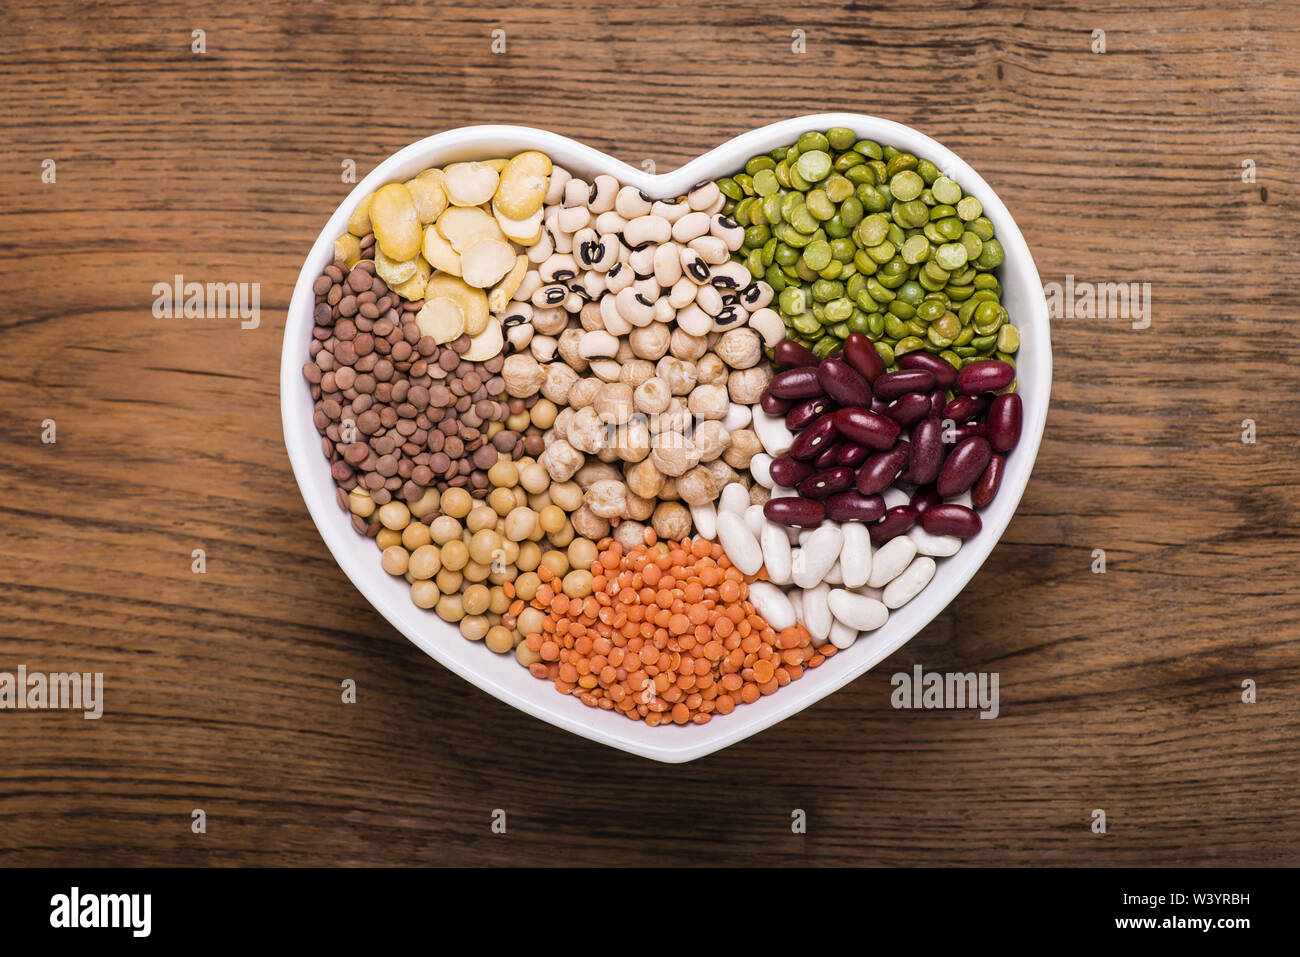 ceramic bowl in the shape of a heart full of different types of dry legumes - Stock Image